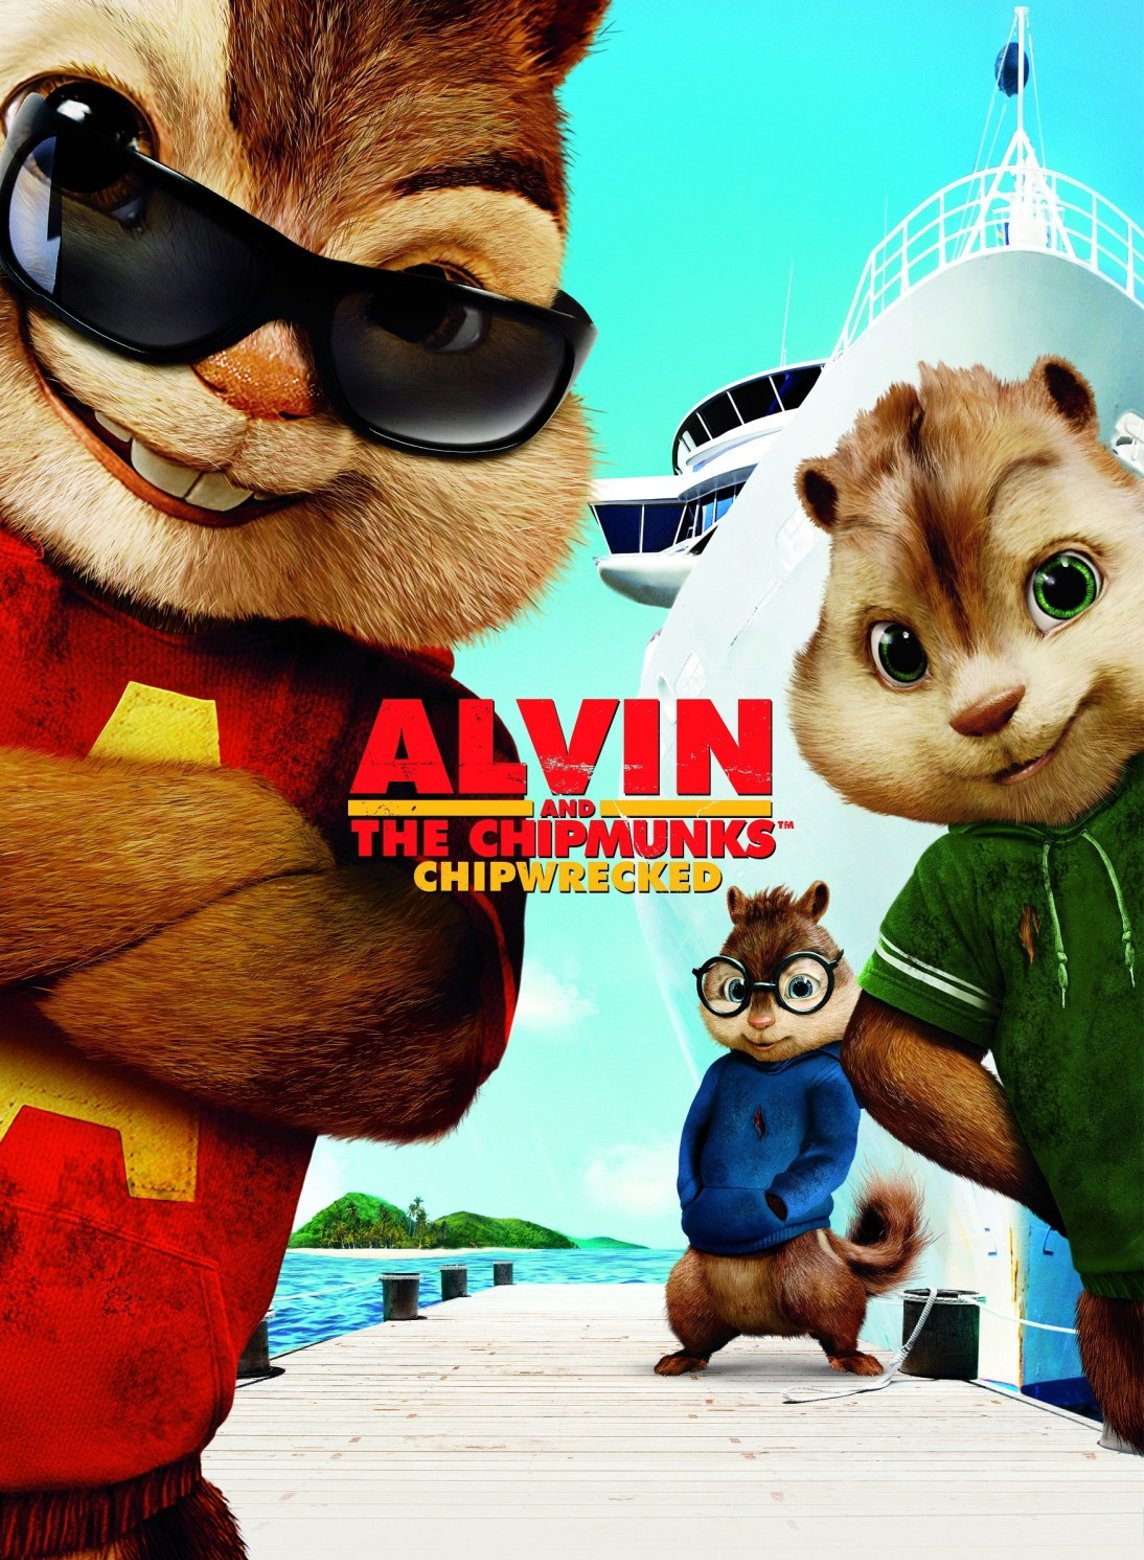 alvin and the chipmunks-#26